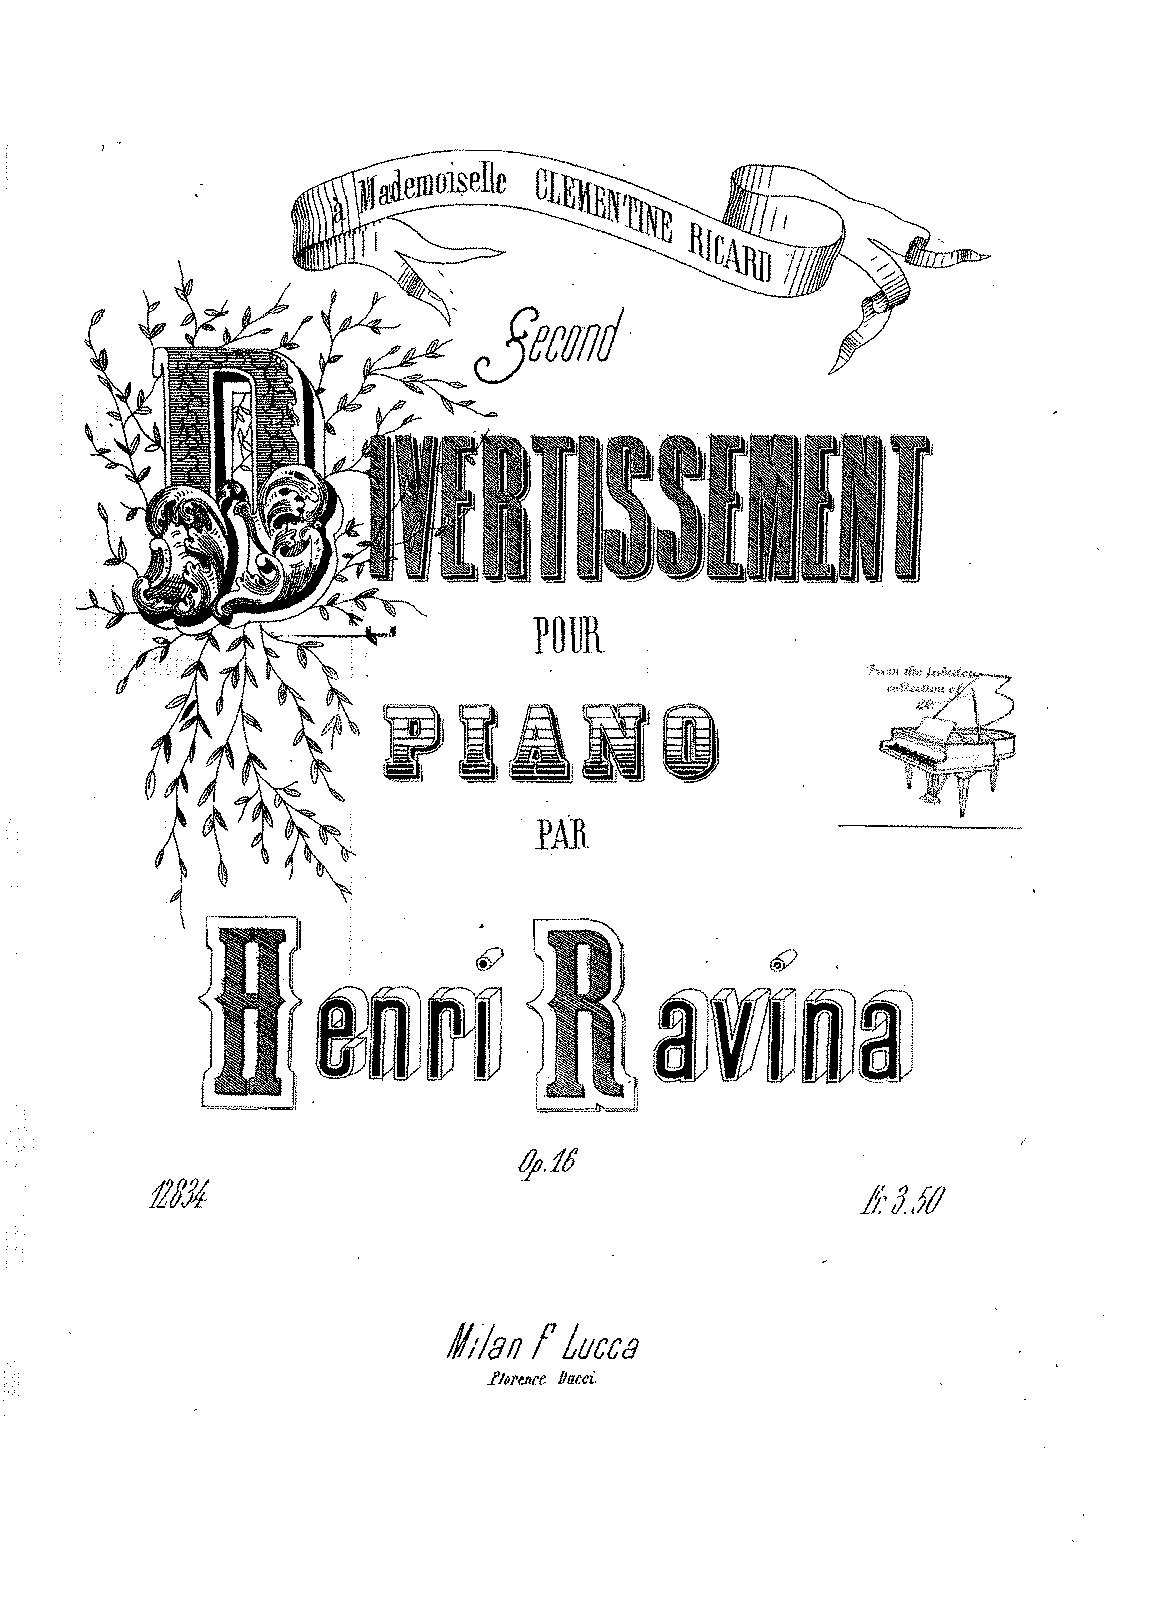 PMLP45901-Ravina - 016 - Second Divertissement.pdf